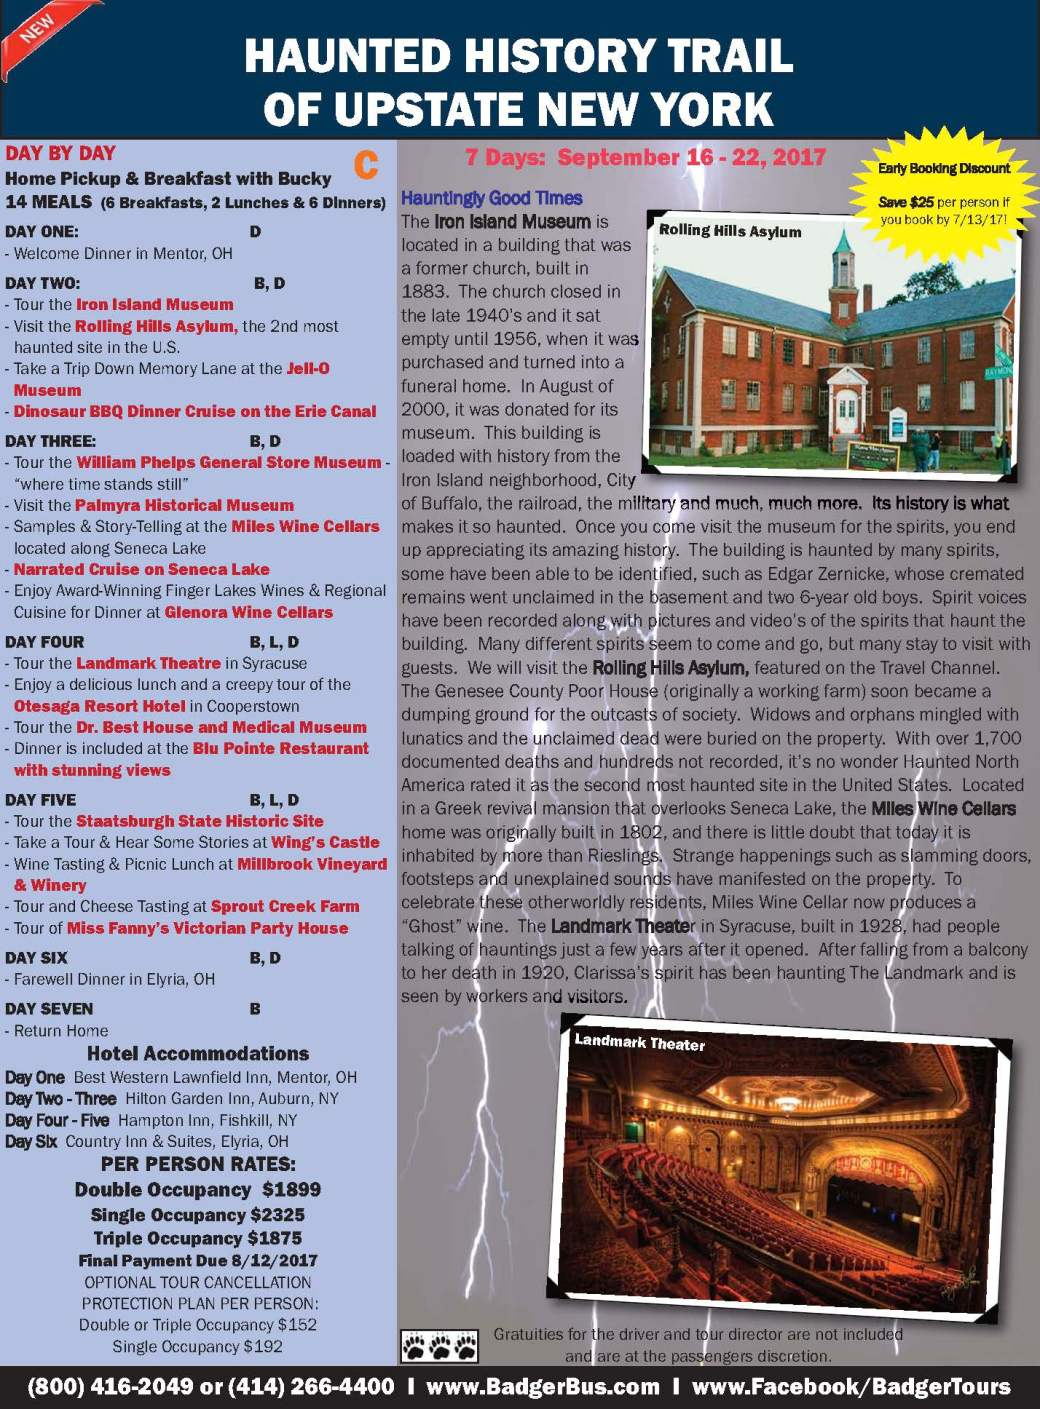 Haunted History Trail of Upstate New York_Flyer 2017_Page_1